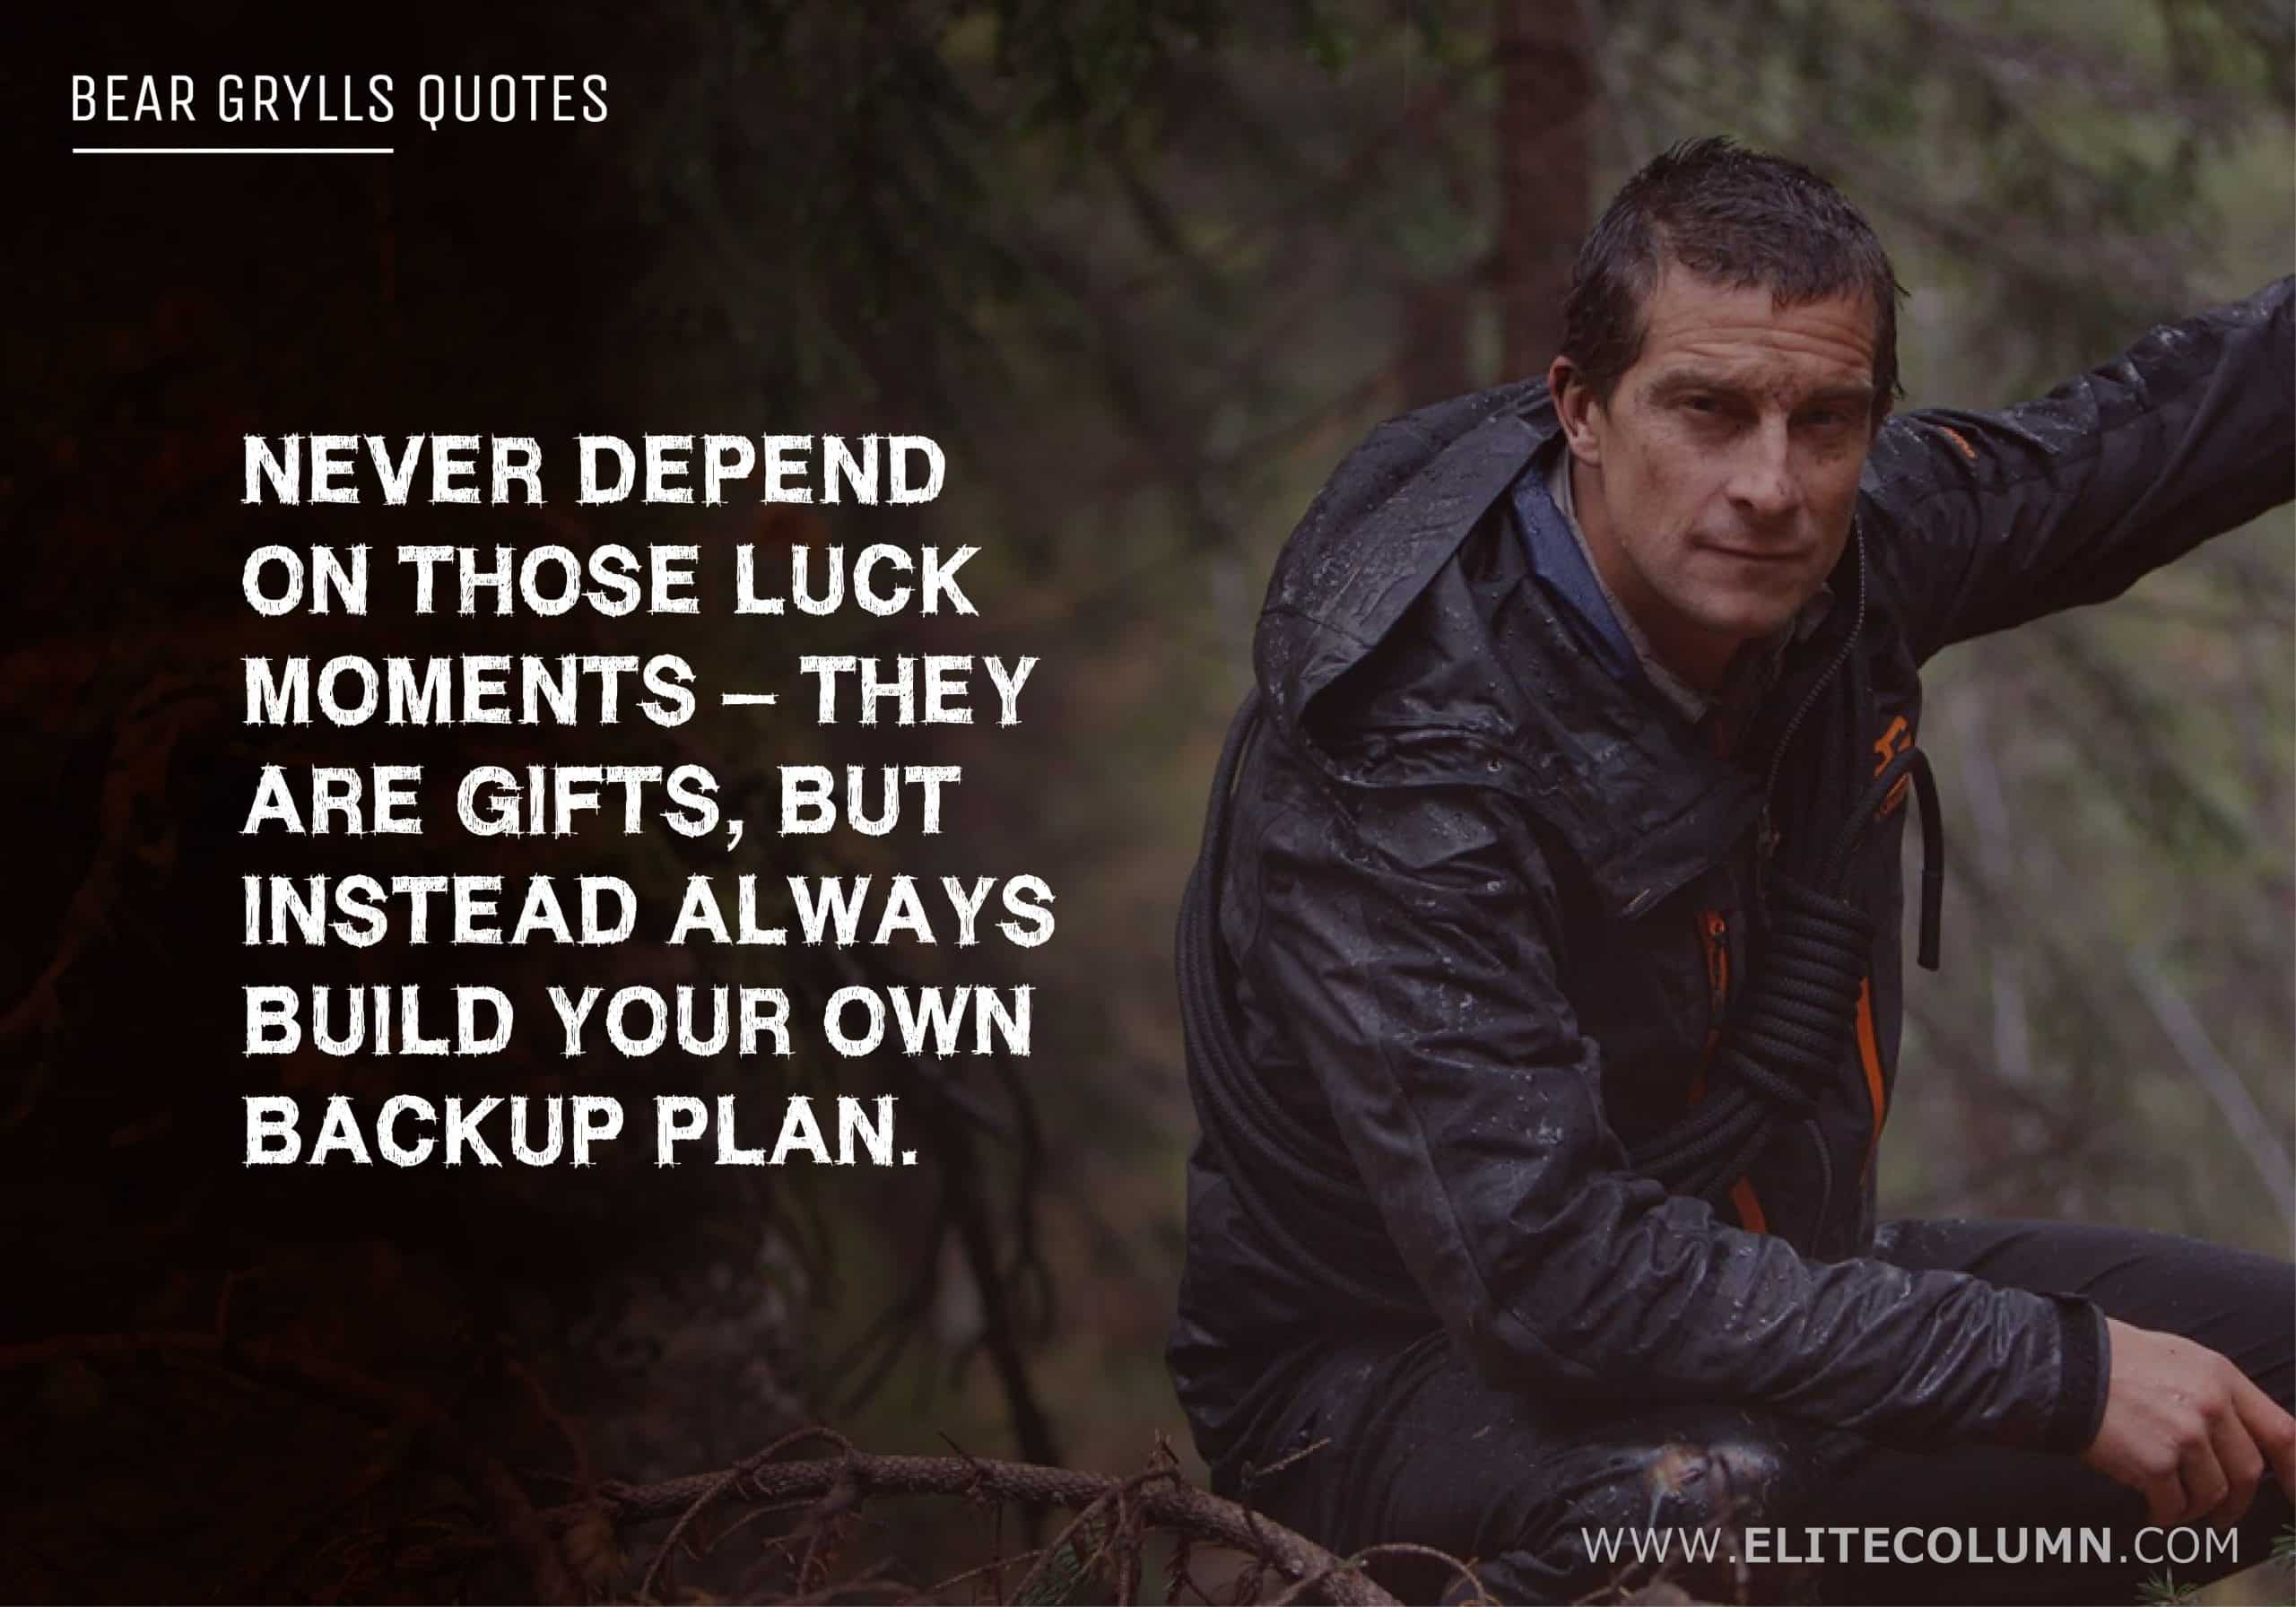 Bear Grylls Quotes (10)